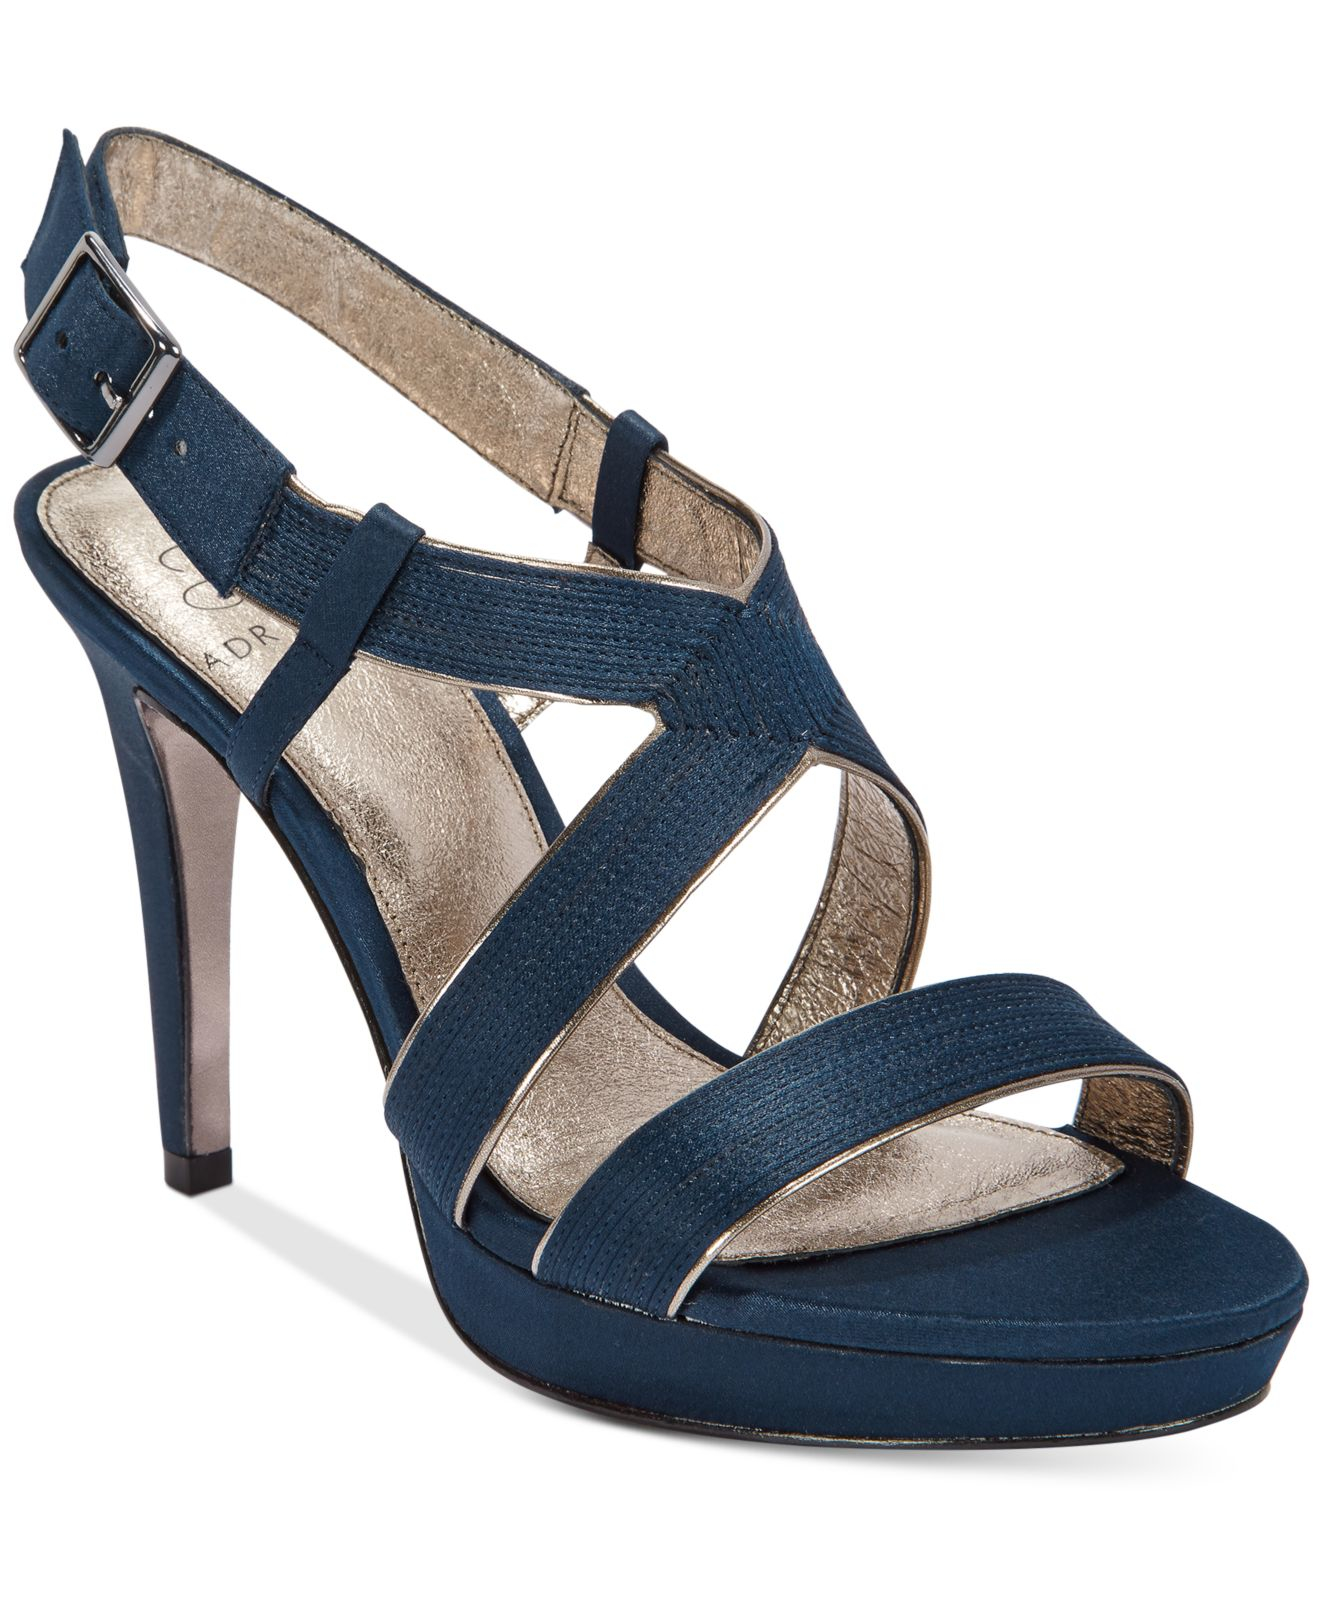 Lyst - Adrianna Papell Anette Evening Sandals in Blue